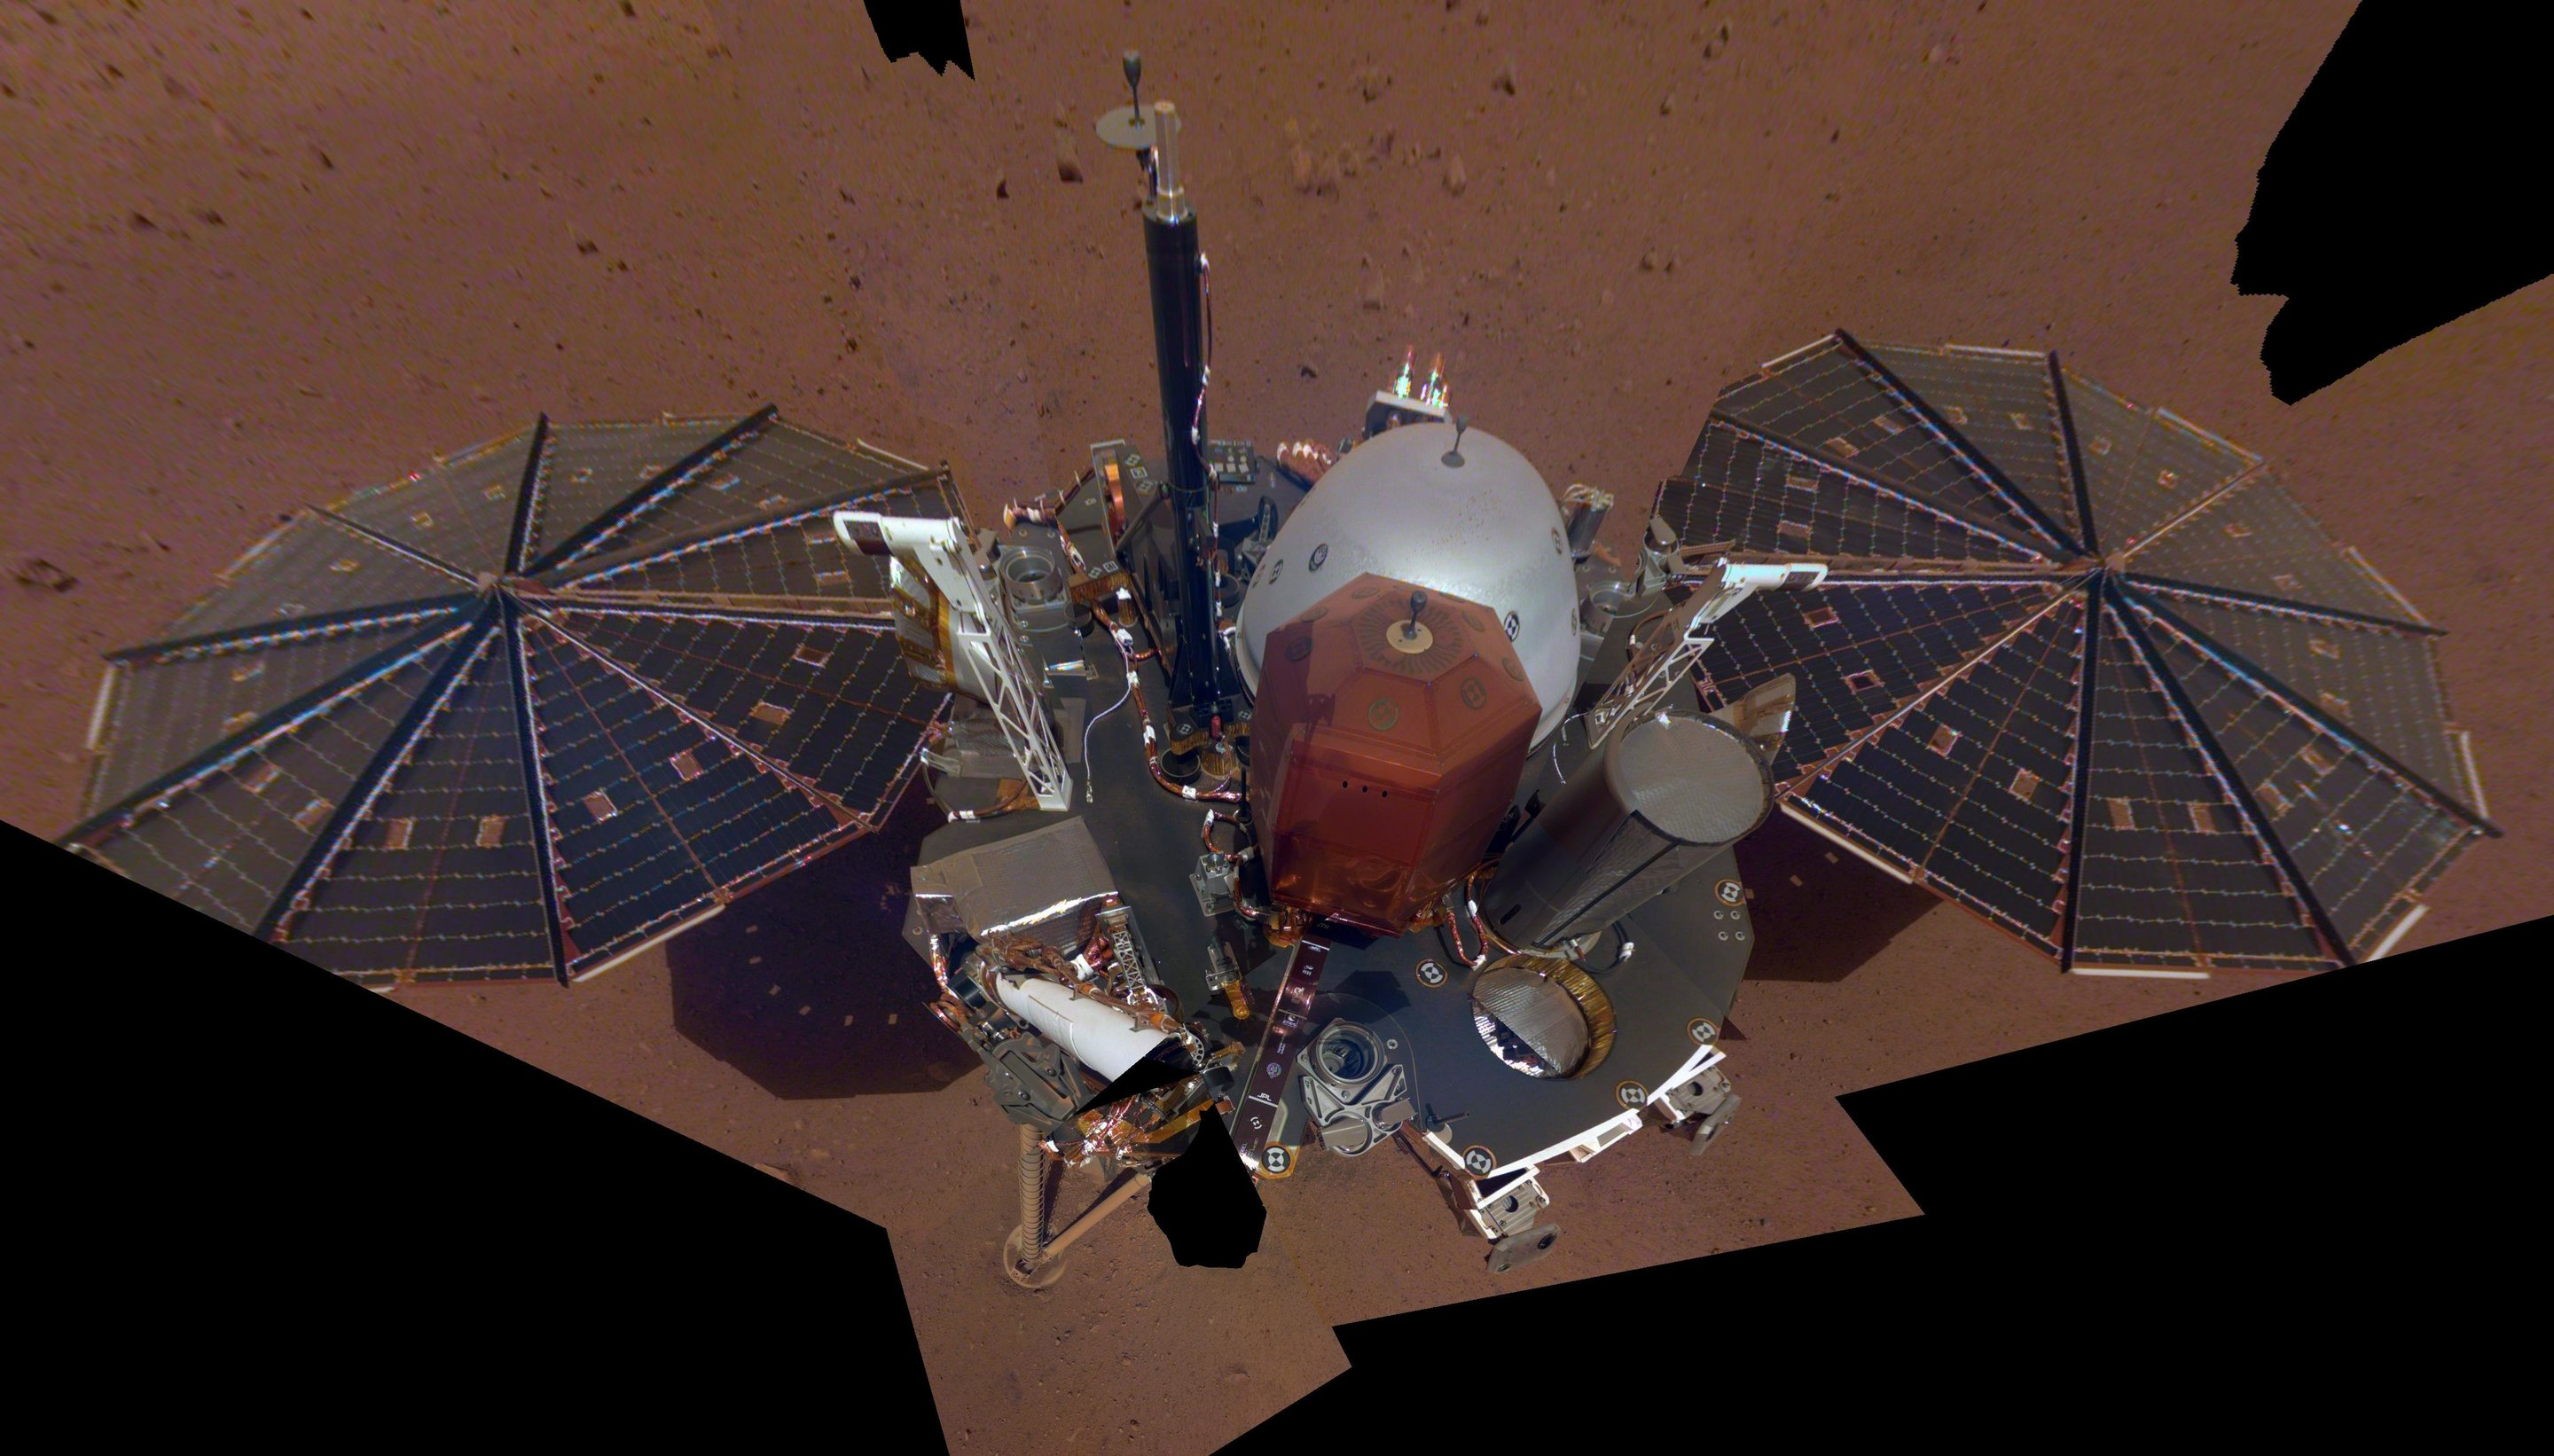 mars rover insight photos - photo #35